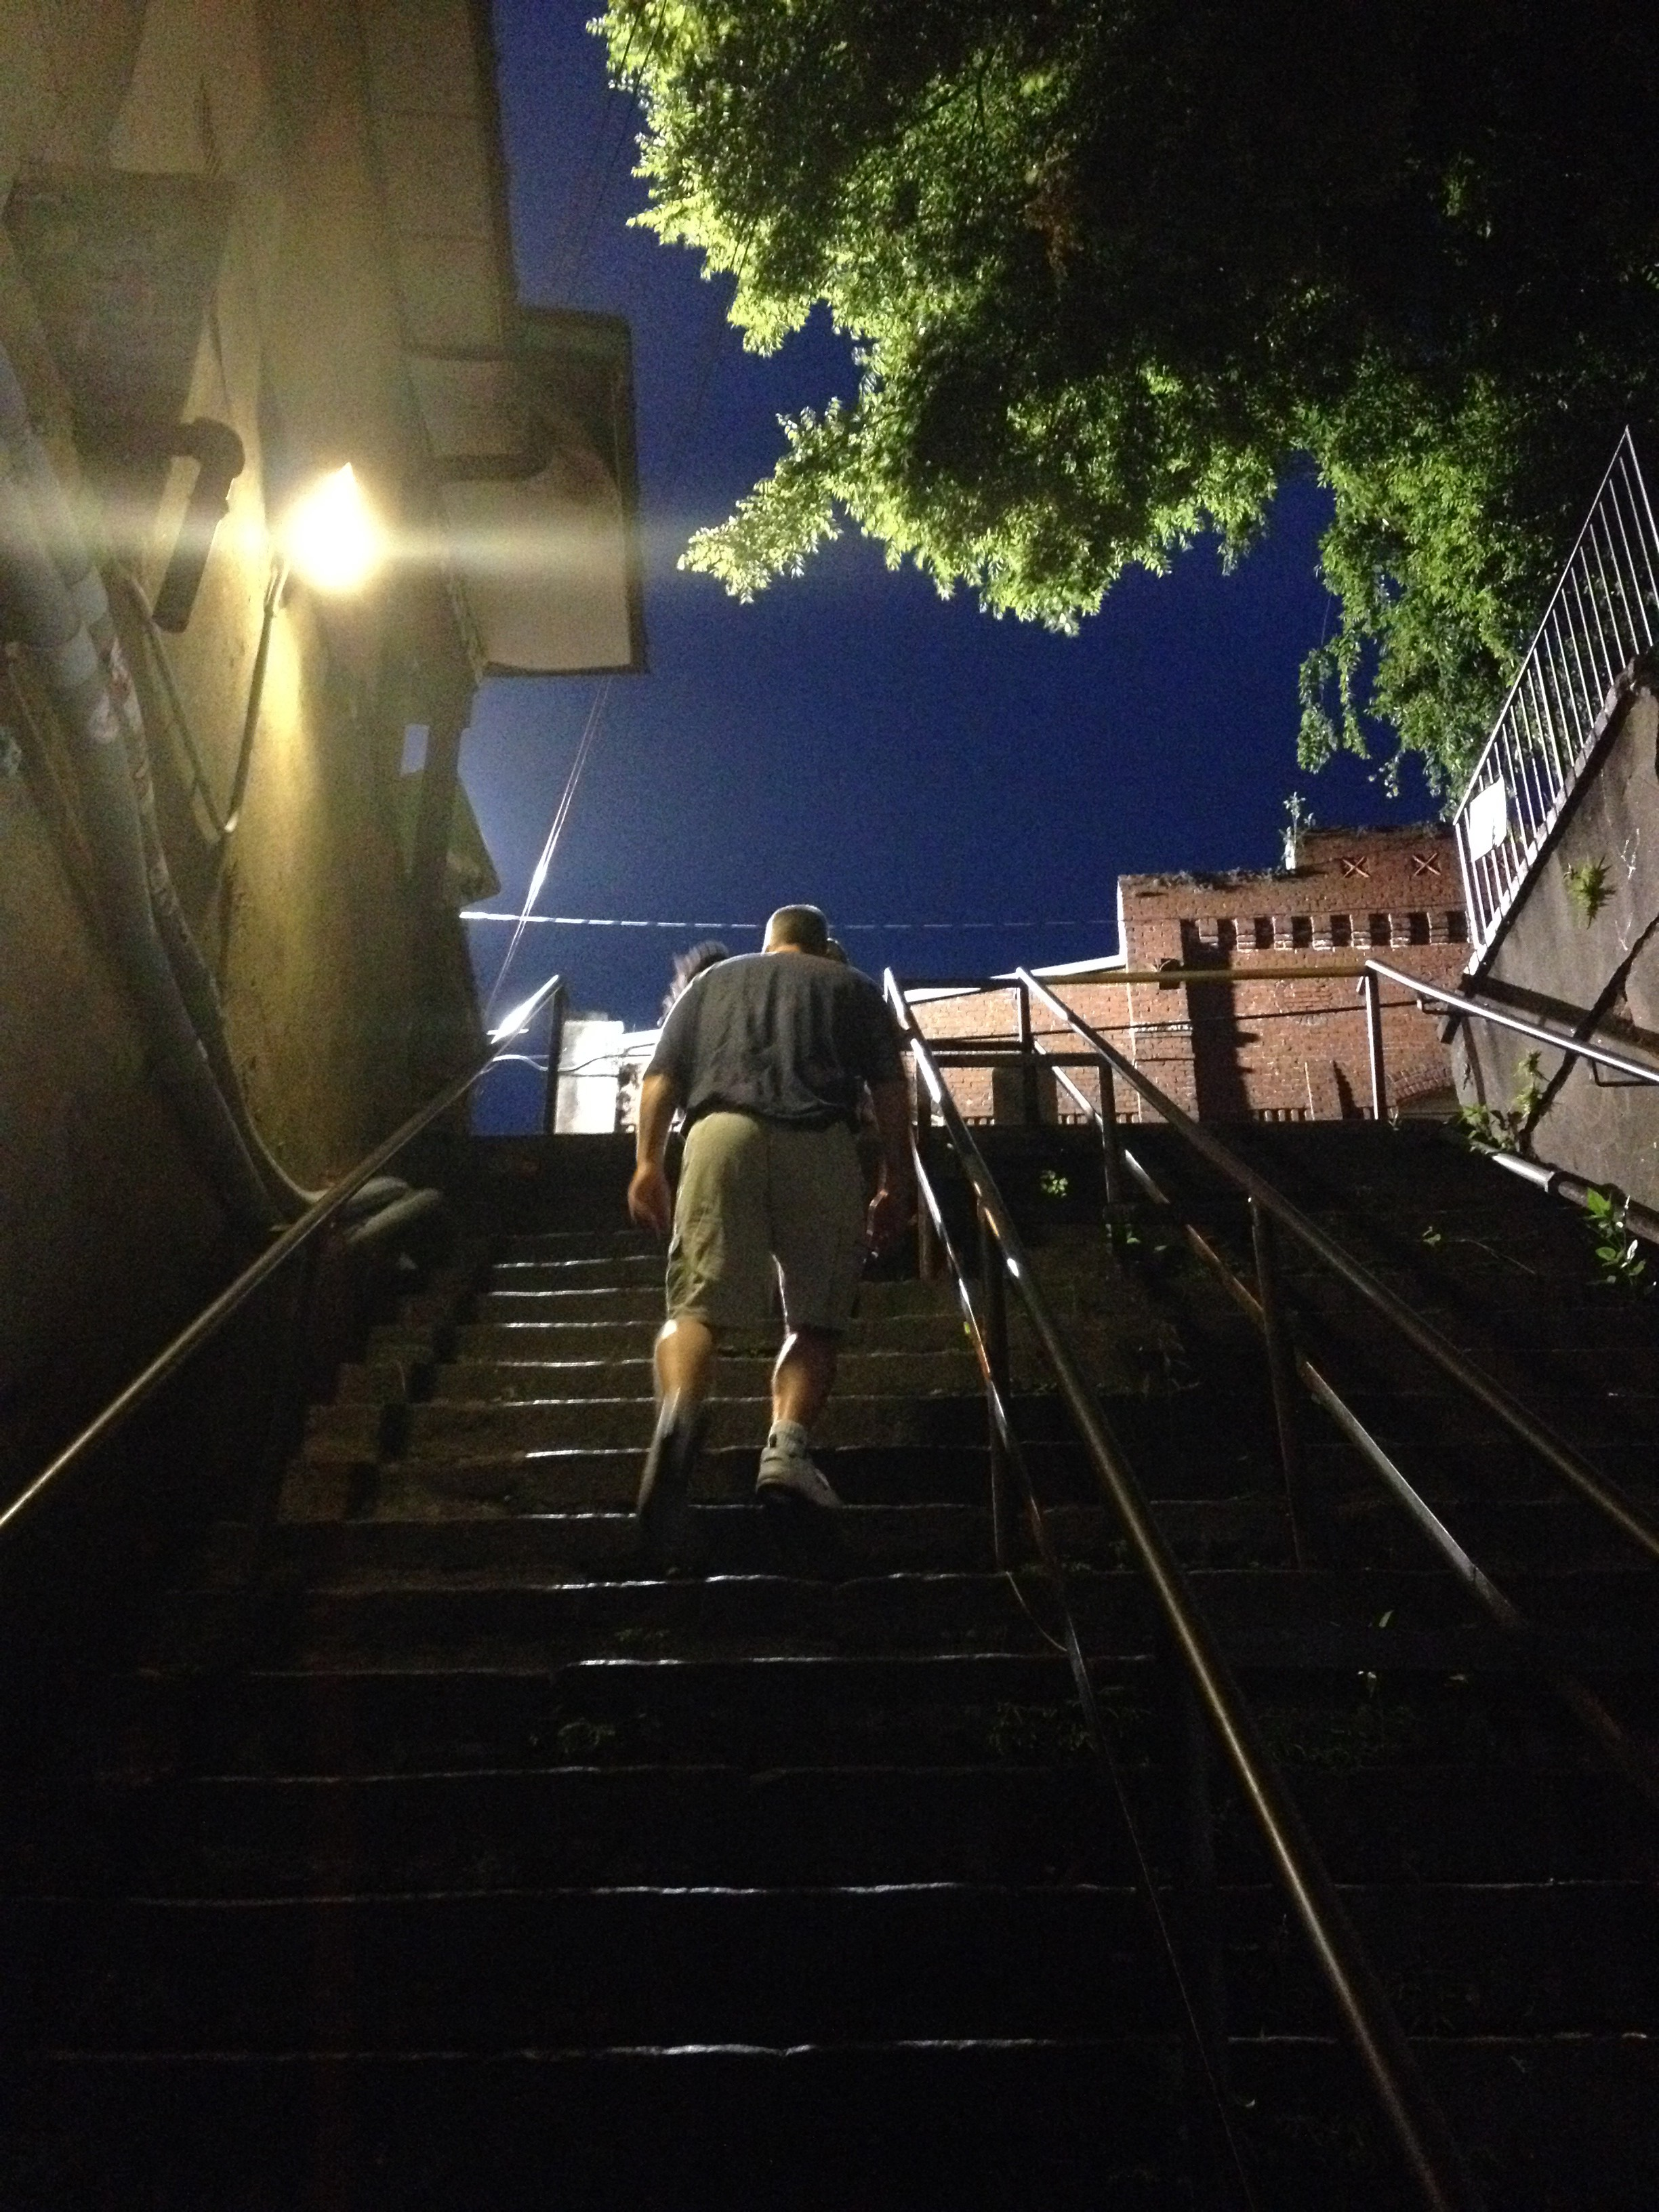 The Stone Stairs of Death